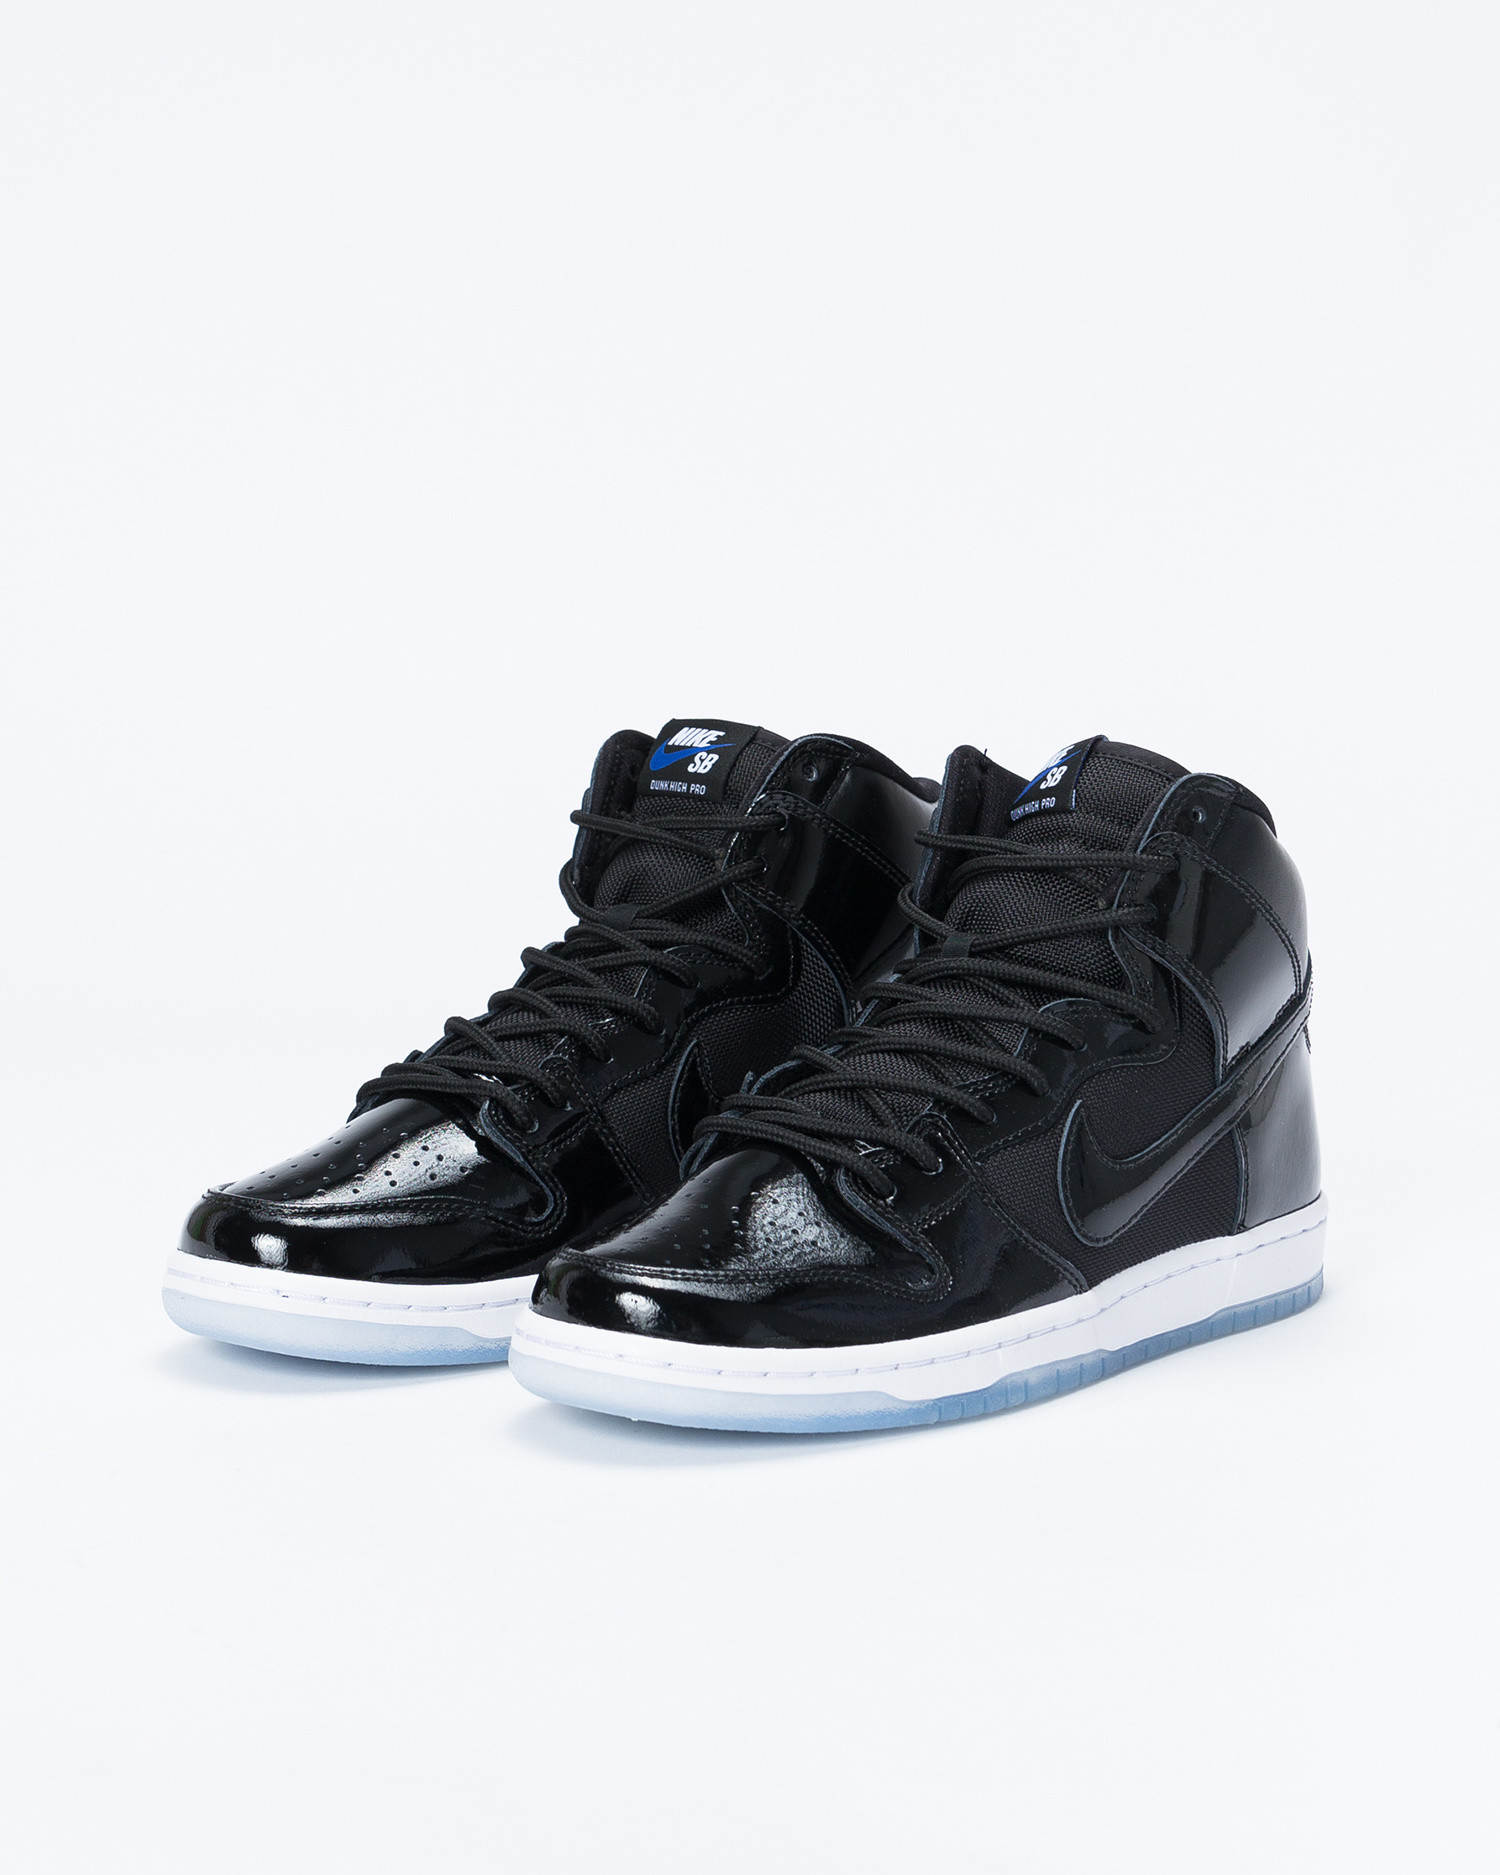 Nike SB Dunk high pro Black/black-white-varsity royal